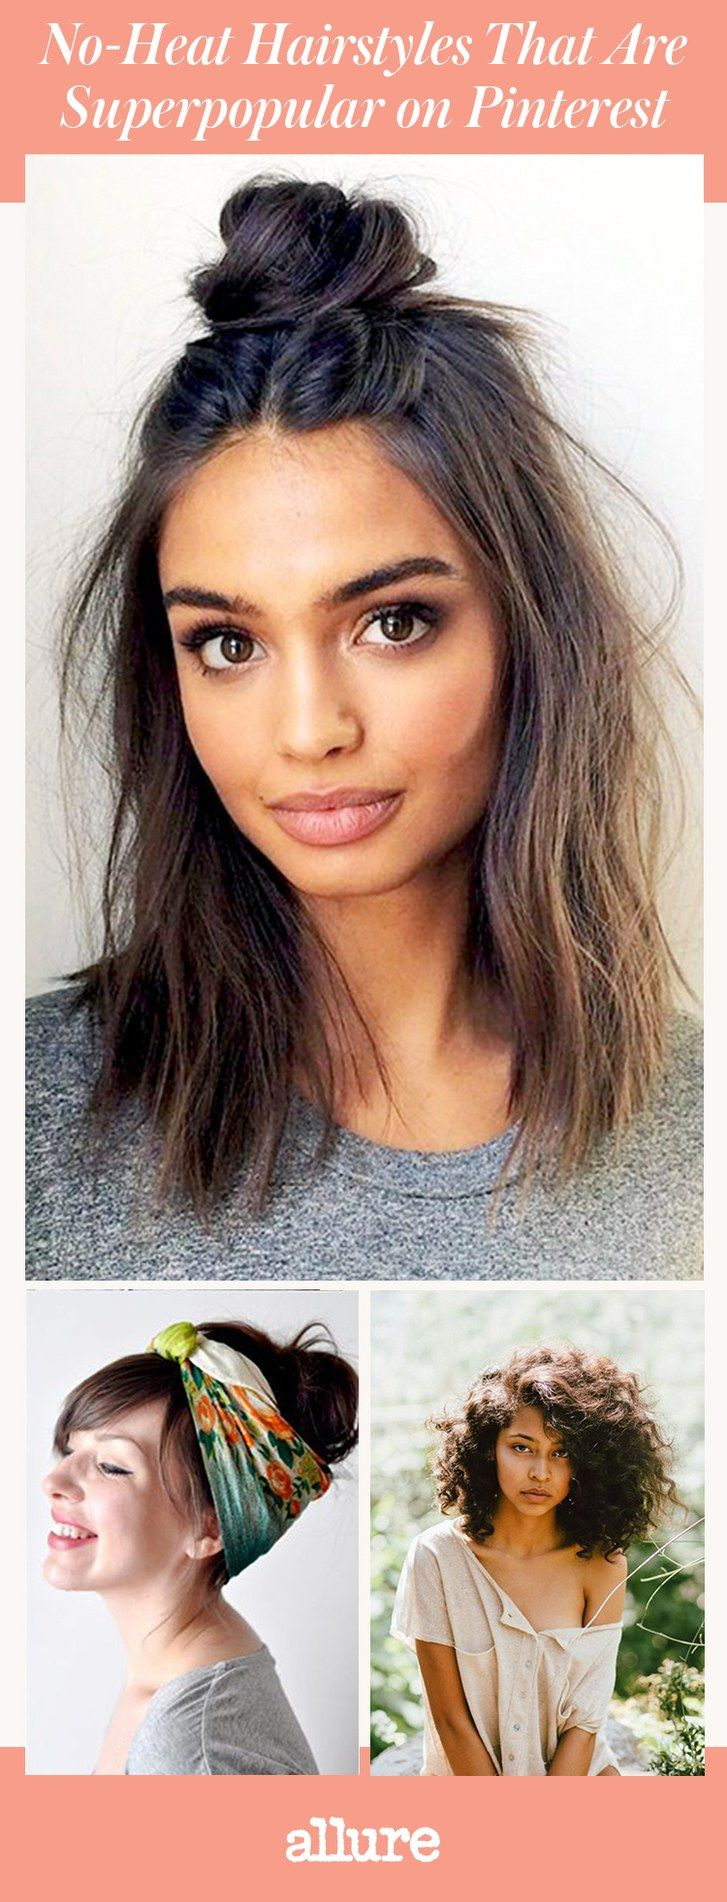 9 No-Heat Hairstyles That Are Superpopular on Pinterest